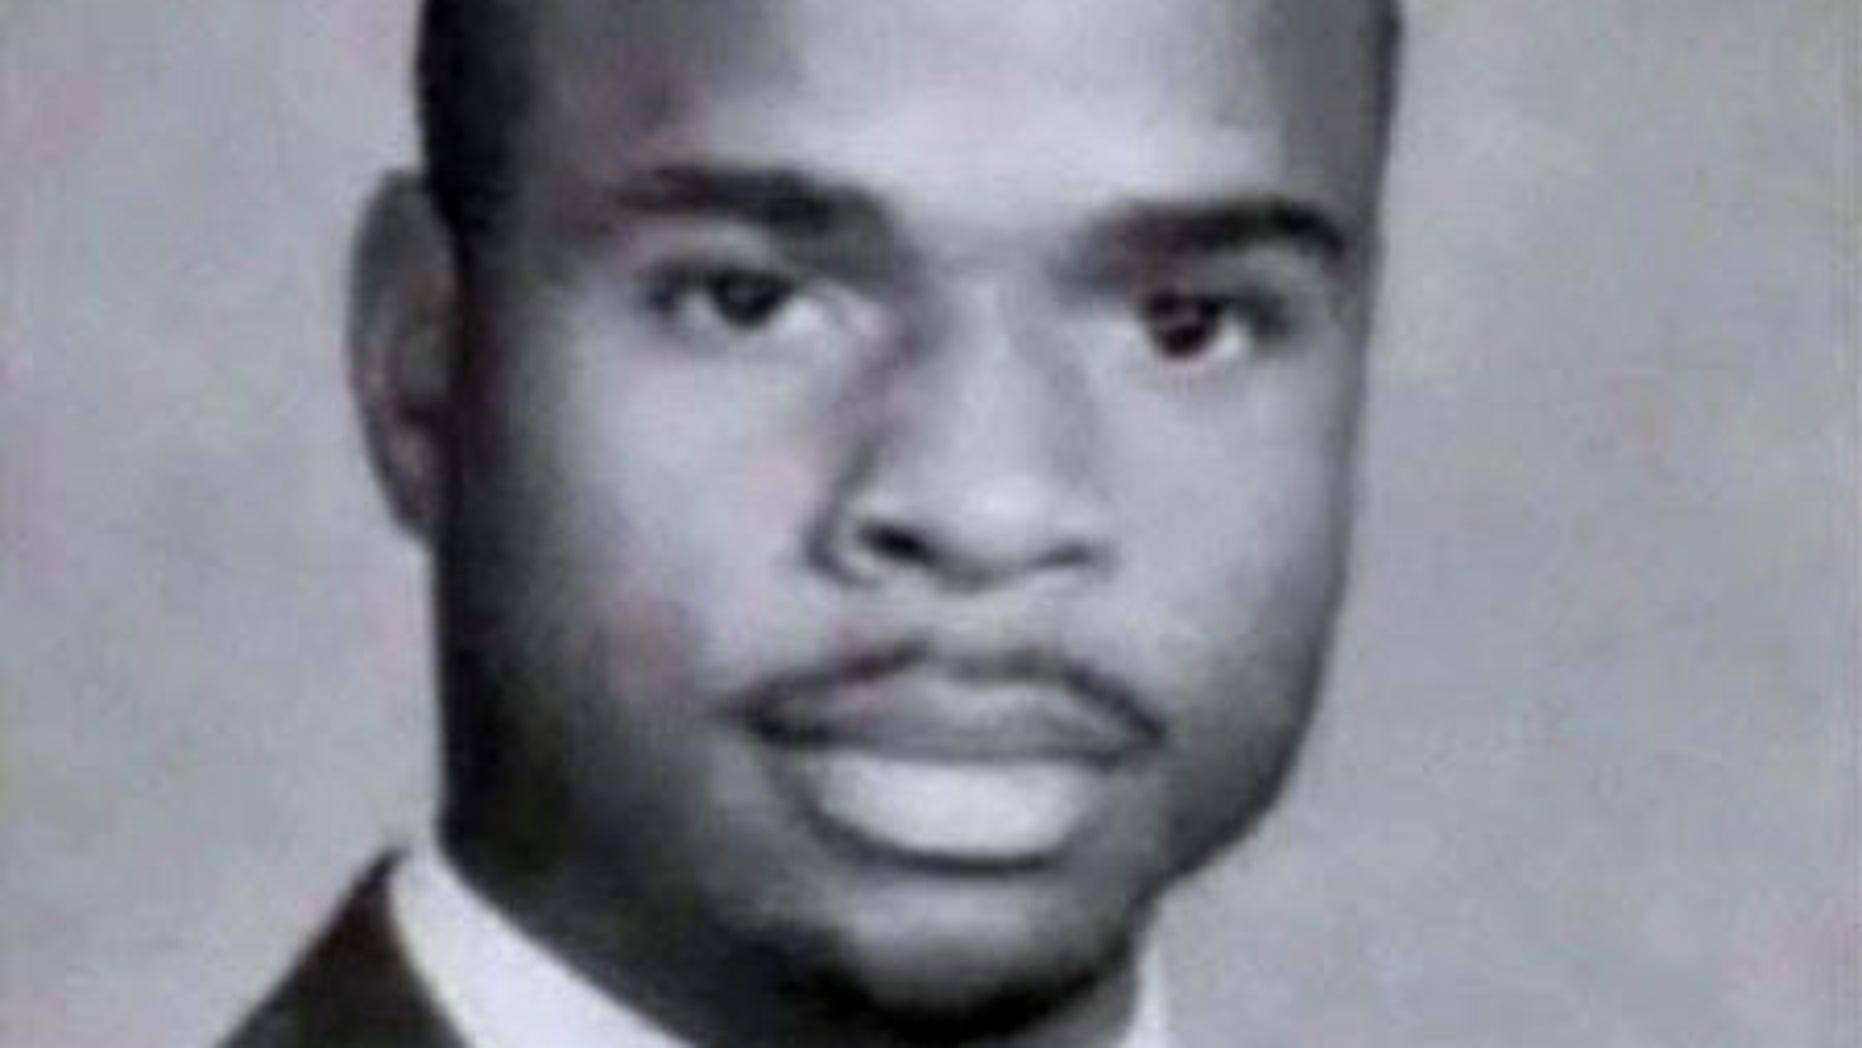 Sharif Mobley, 26, is seen here in a 2002 yearbook photo from Buena Regional High School in New Jersey.